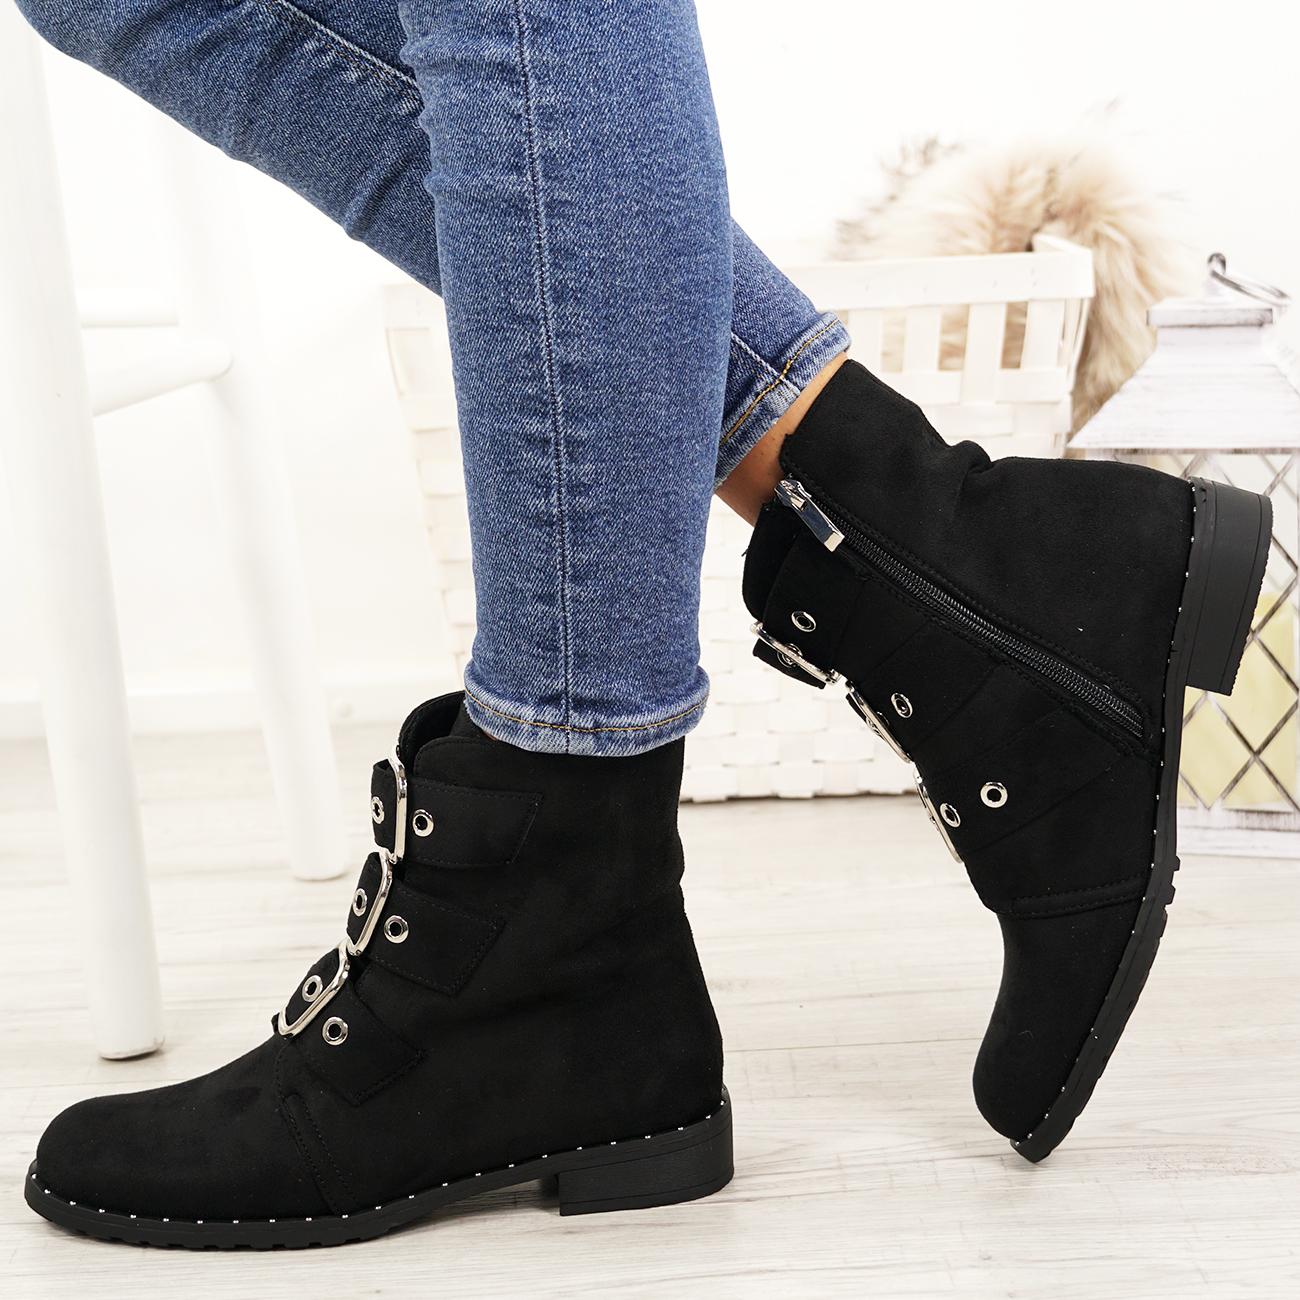 LADIES-WOMENS-BIKER-ANKLE-BOOTS-ZIP-STUDDED-LOW-HEEL-COMFY-SHOES-SIZES thumbnail 14